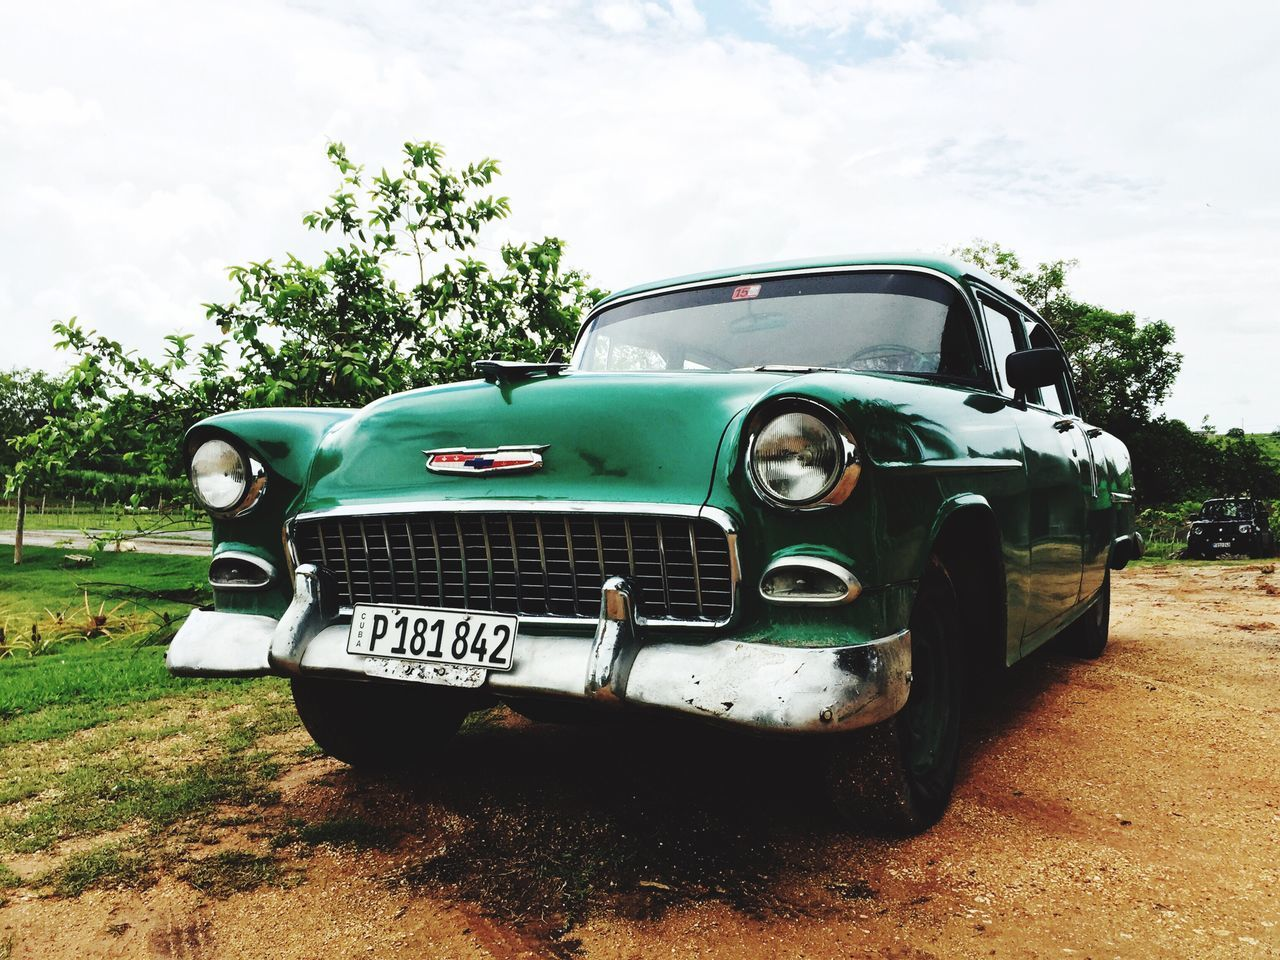 Cuba Cuba Collection Cuba Car Transportation Land Vehicle Mode Of Transport Car Front View Sky Day Cloud - Sky Green Color Outdoors The Past No People